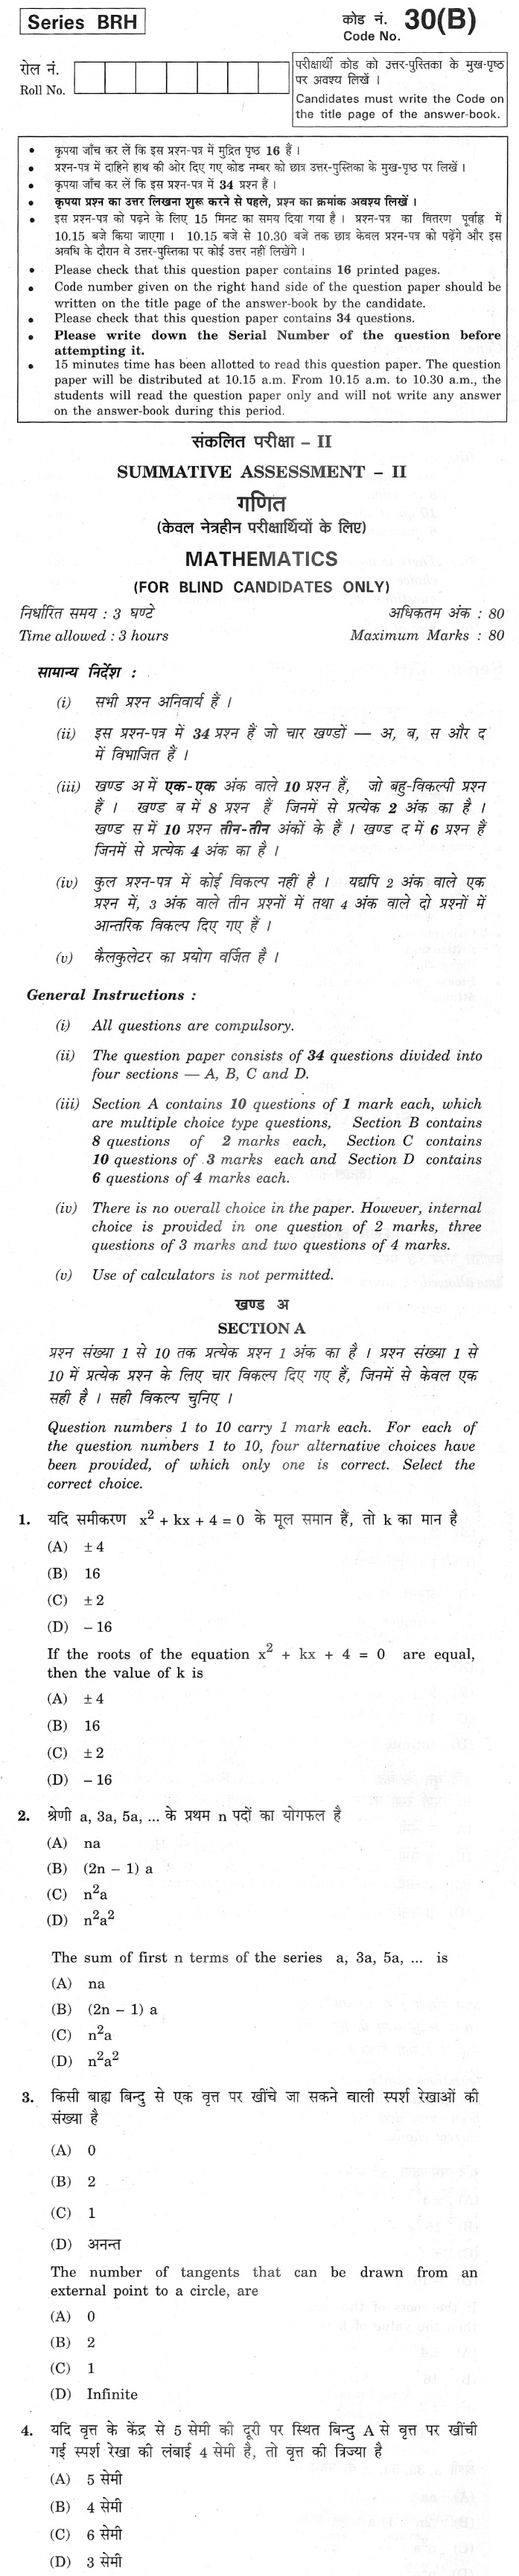 CBSE Class X Previous Year Question Papers 2012 Mathematics for Blind Candidates